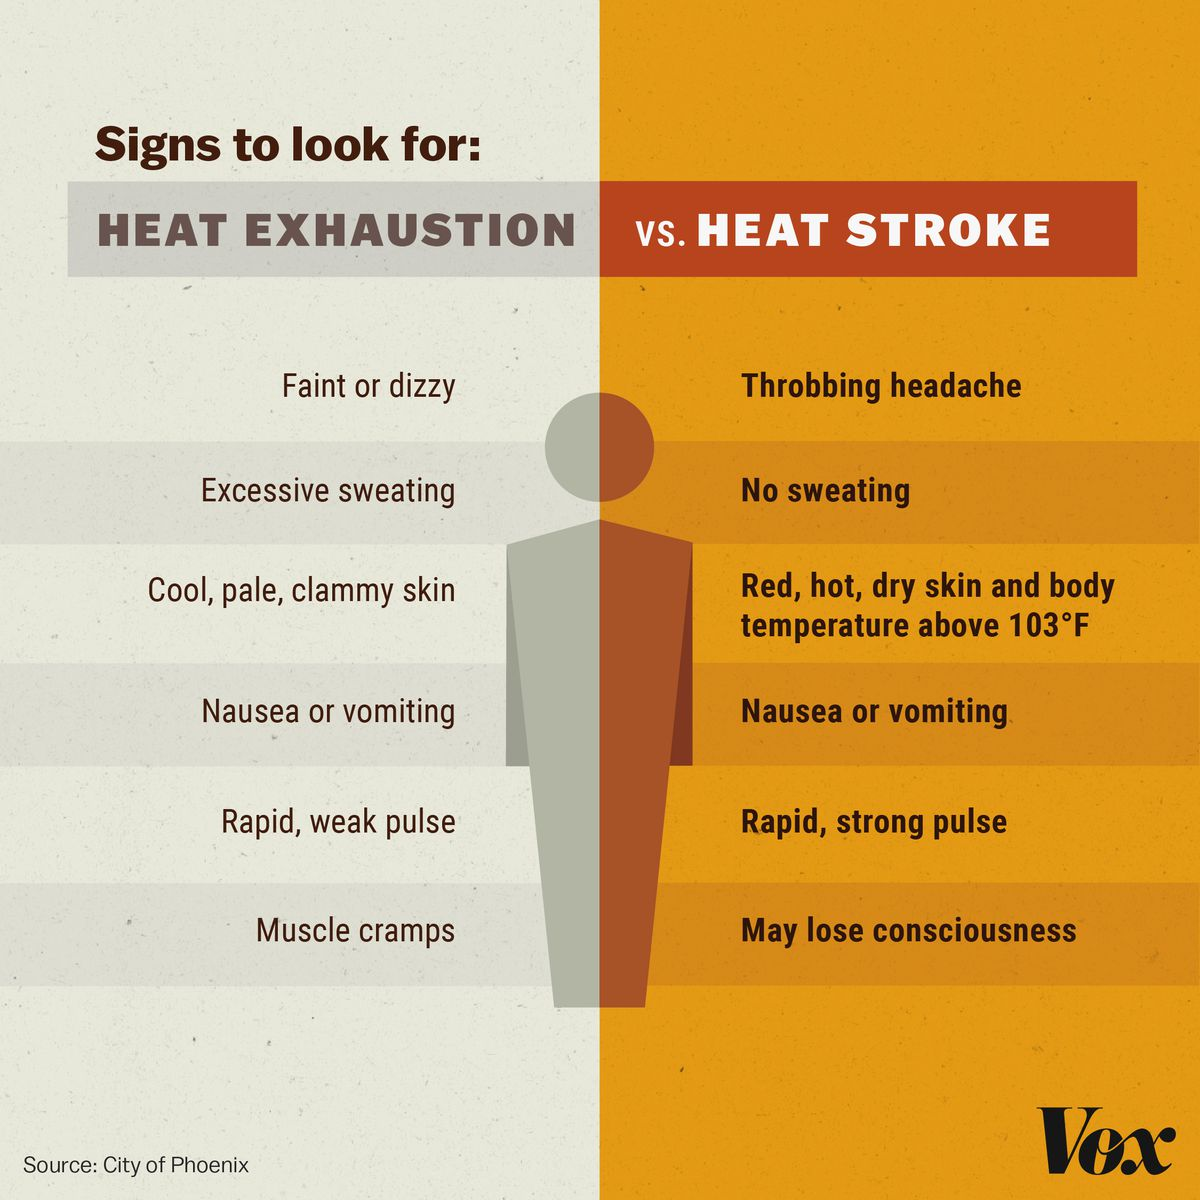 A graphic showing how to distinguish heat stroke from exhaustion. Heat stroke is more severe, and symptoms include nausea, no sweating, a rapid pulse, and red, hot, dry skin.